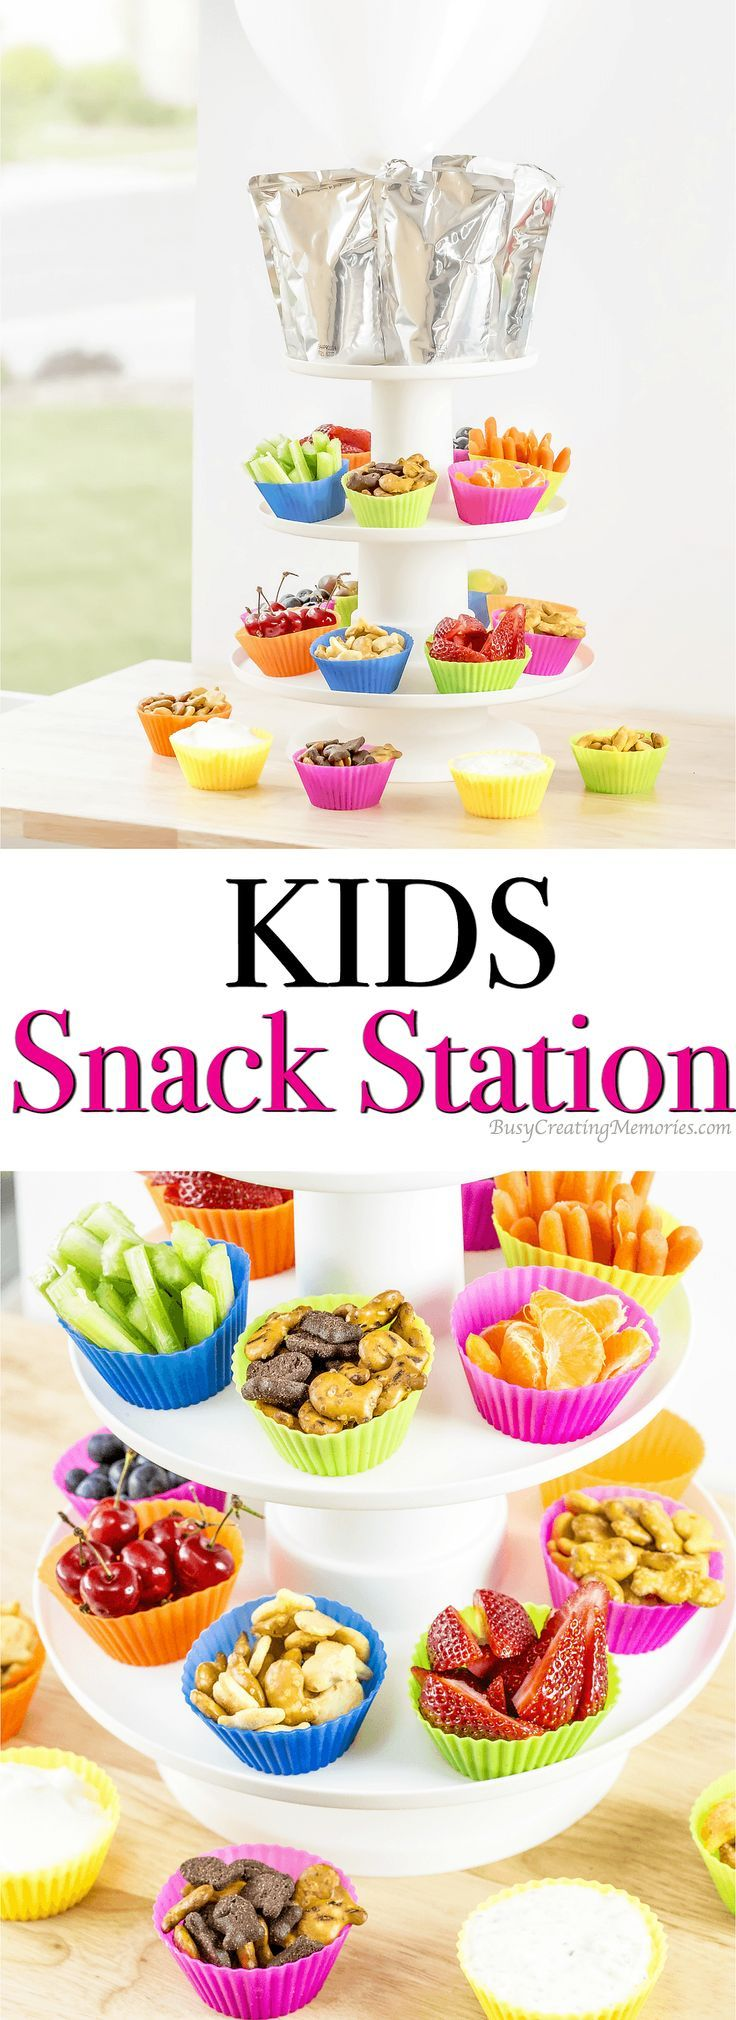 DIY Kids Snack Station Tutorial for happy kids all summer!  This easy Kids Snack Station let's them have snacks for a full day right at their fingertips. Full of their favorite kids food, finger foods and kid friendly snacks. - Goldfish Crowd AD